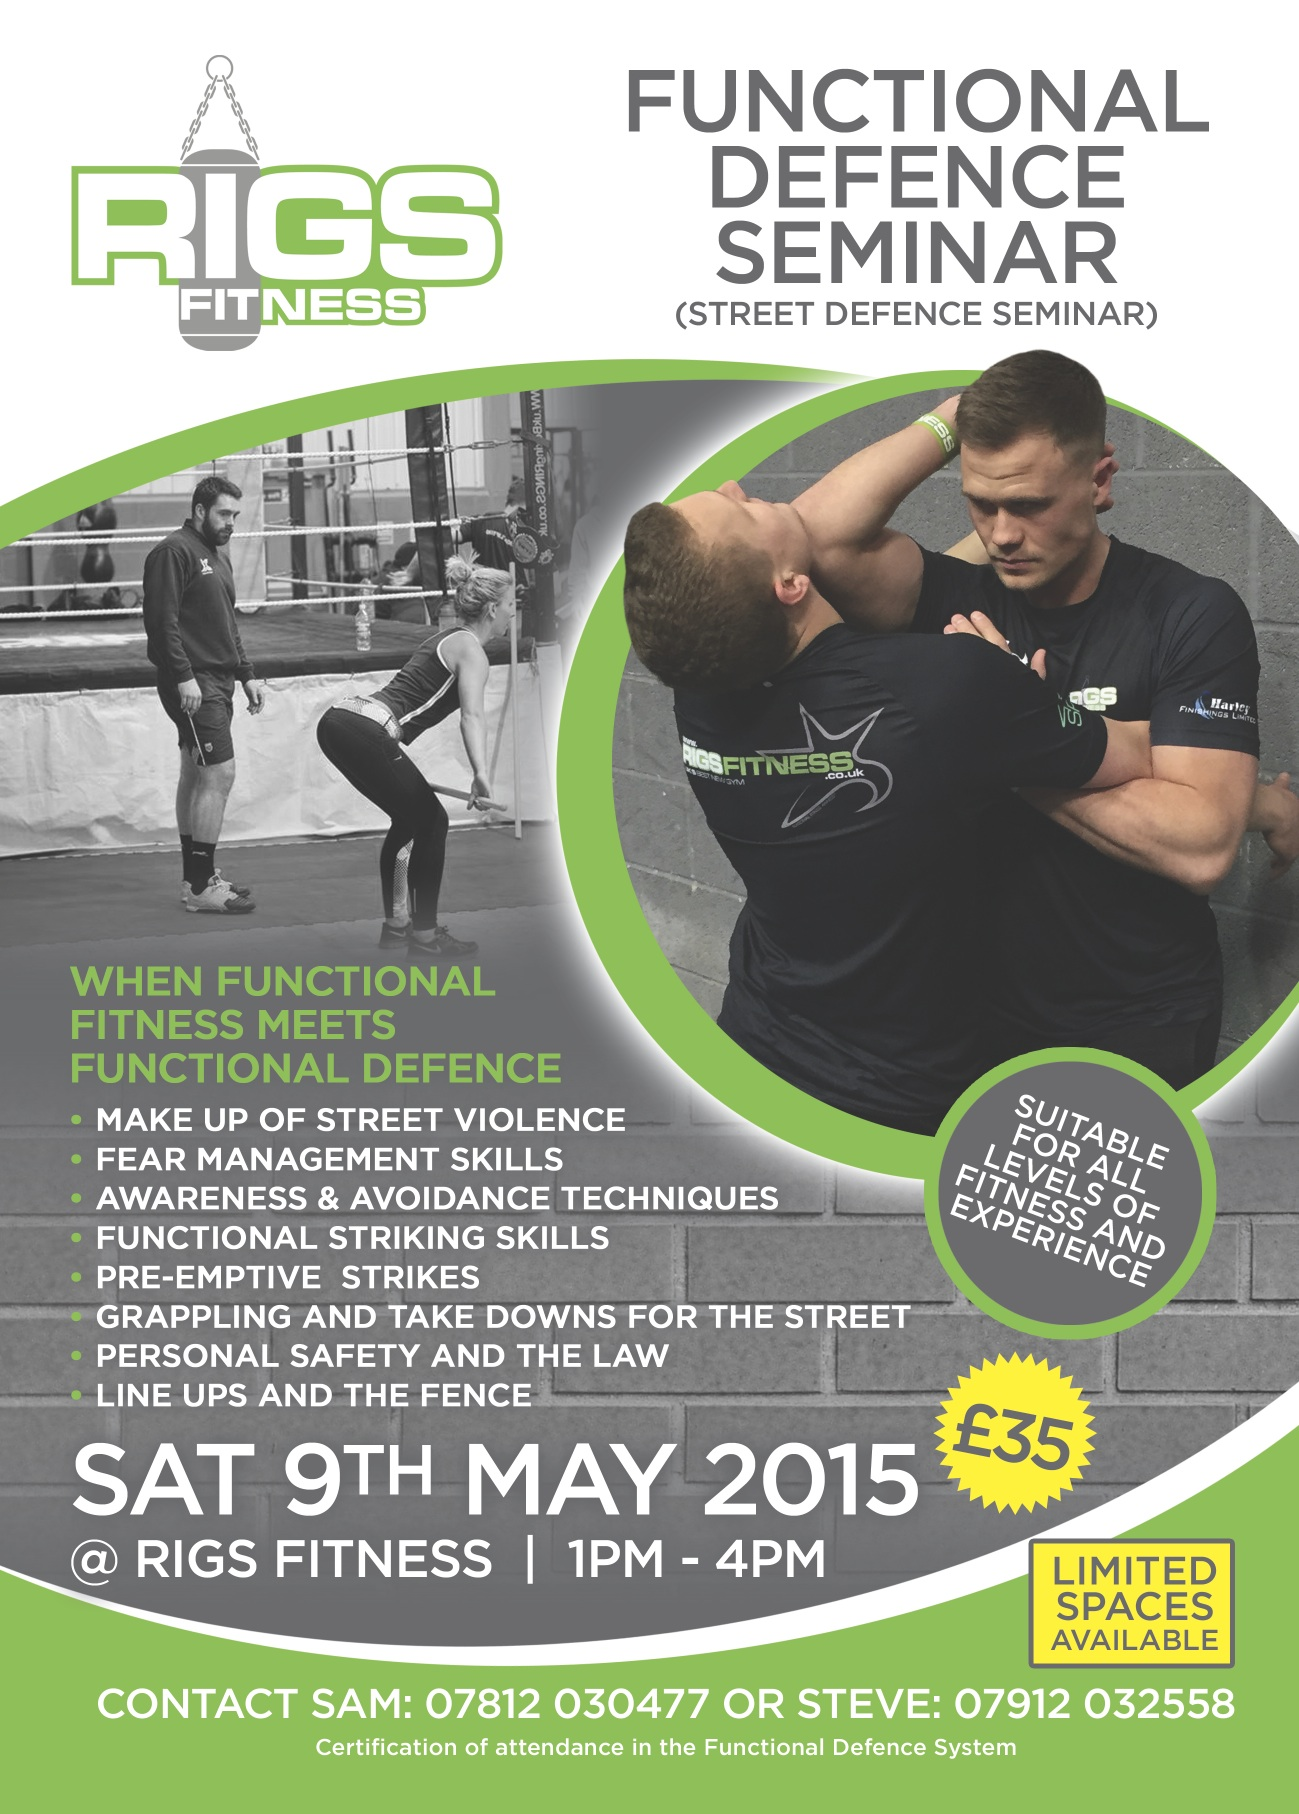 Functional Defence Seminar at Rigs Fitness, Street Defence